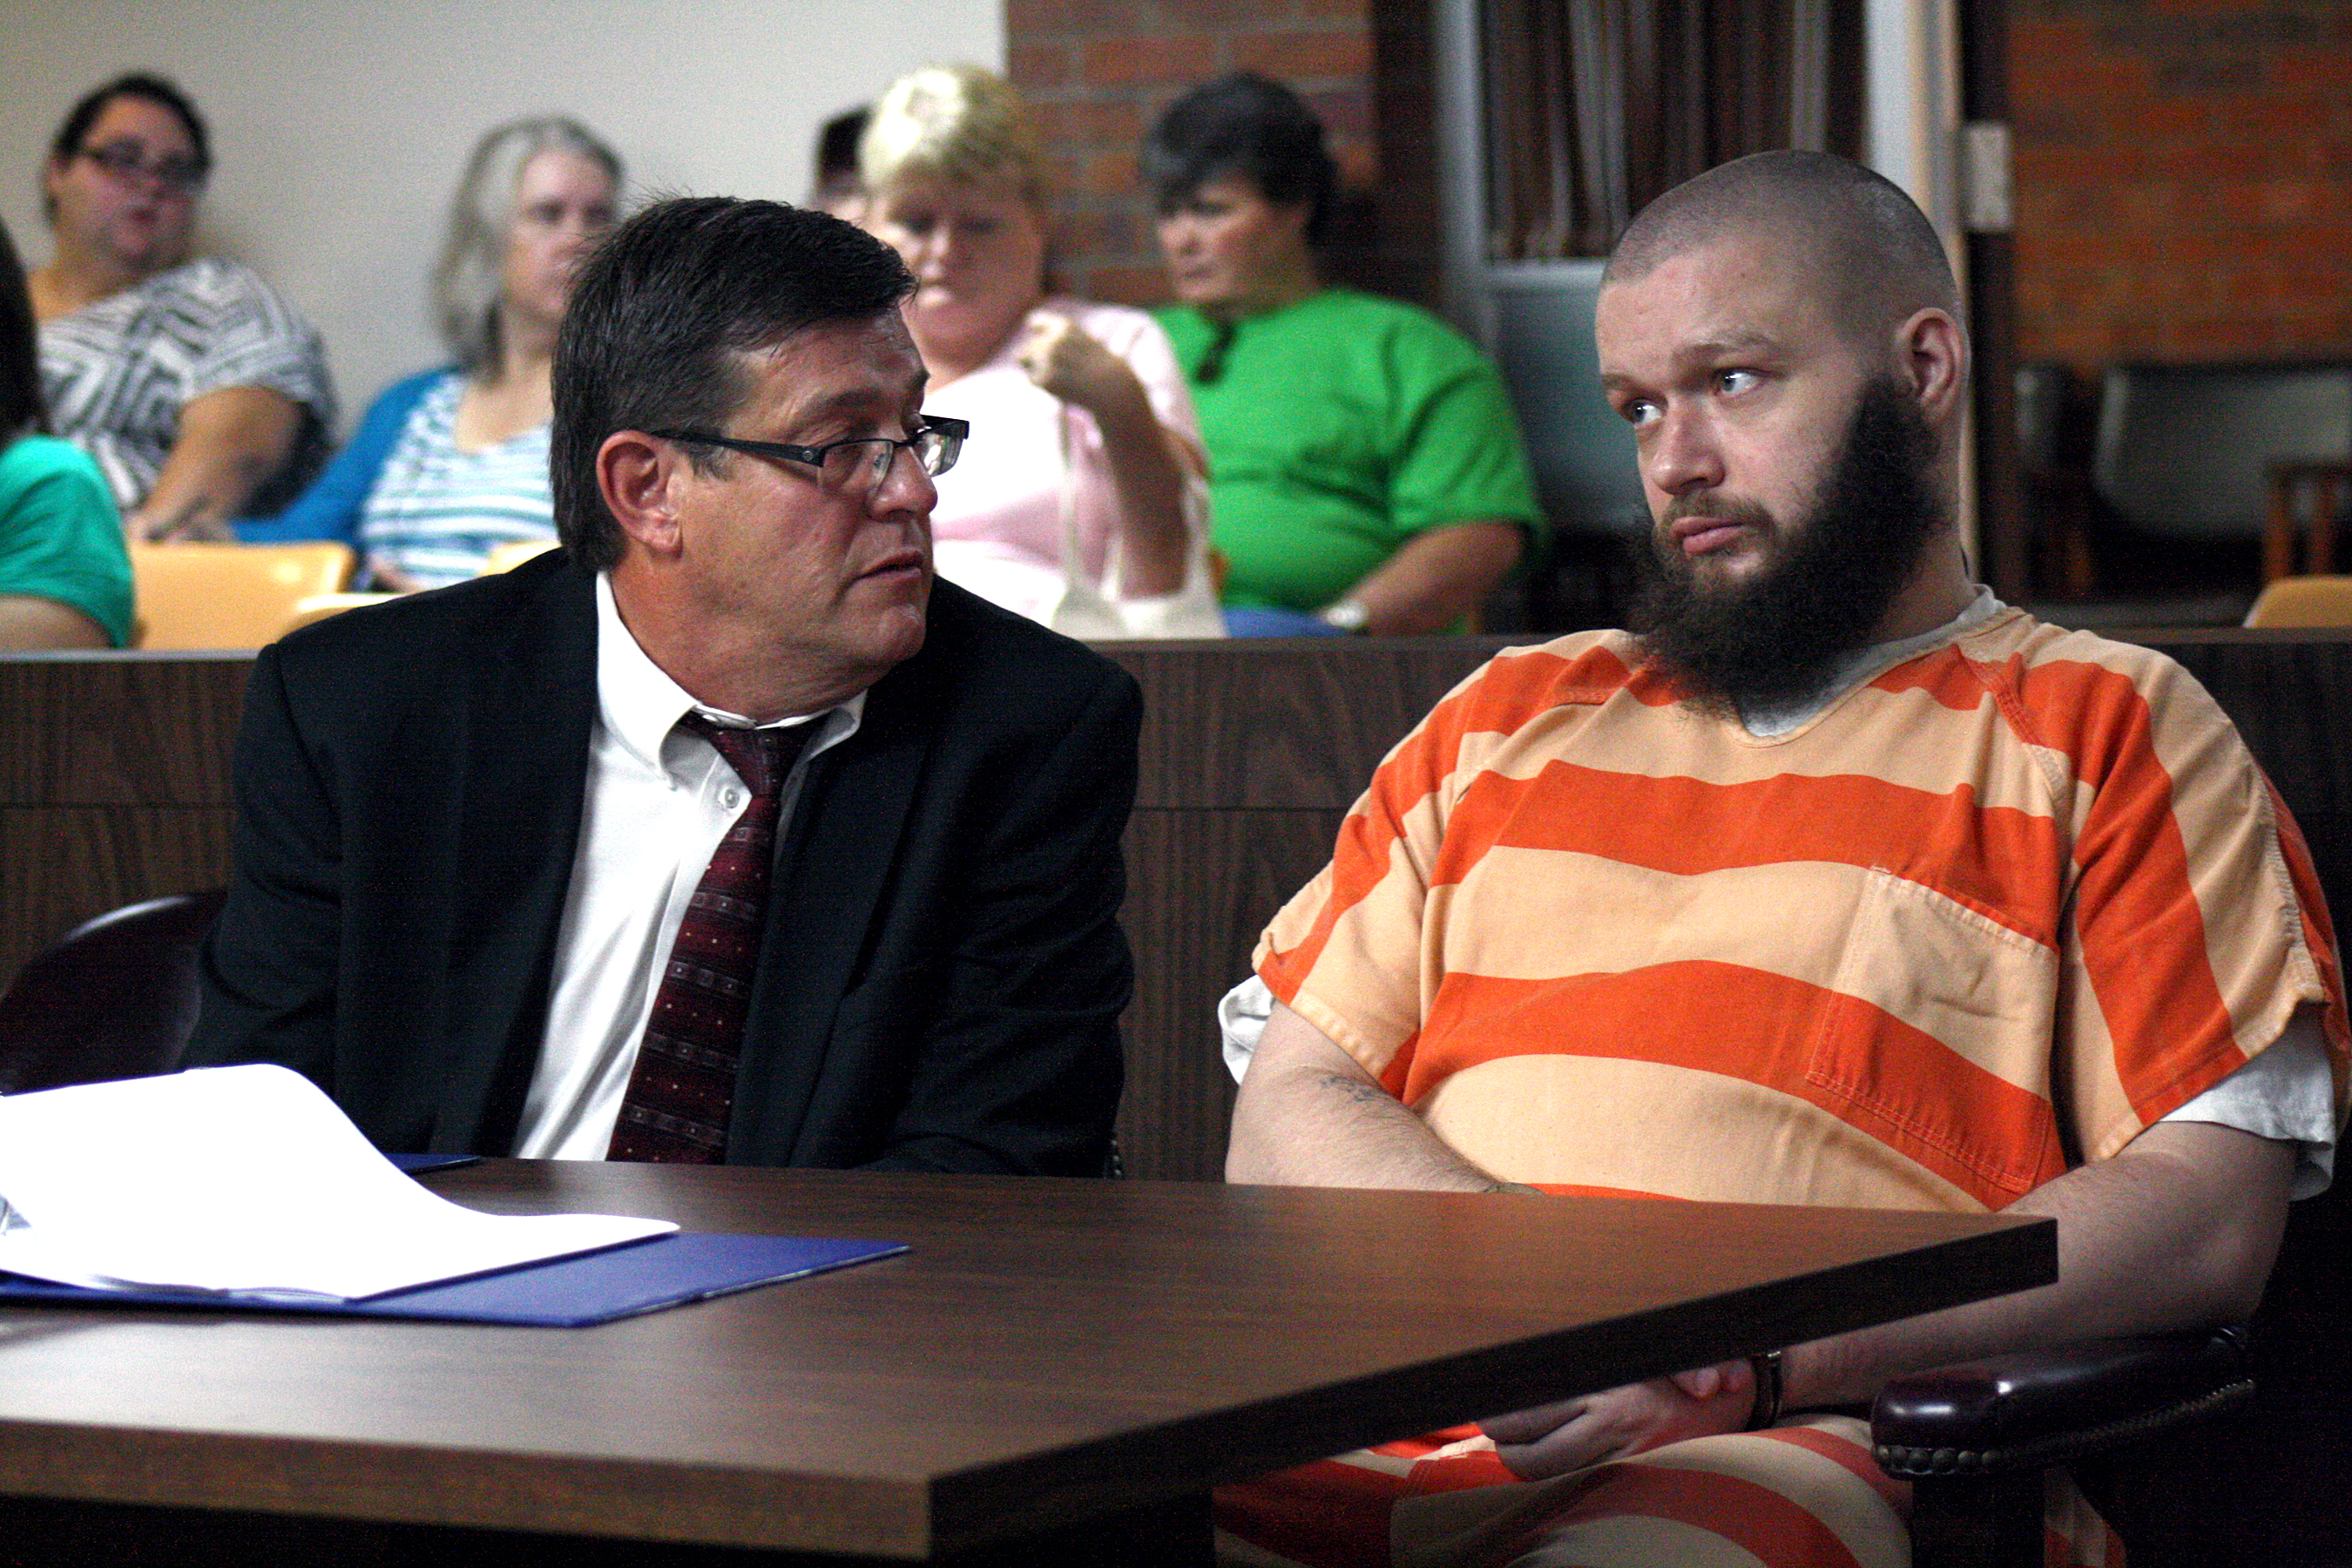 Jurors find Kyle Flack guilty of capital murder in Ottawa